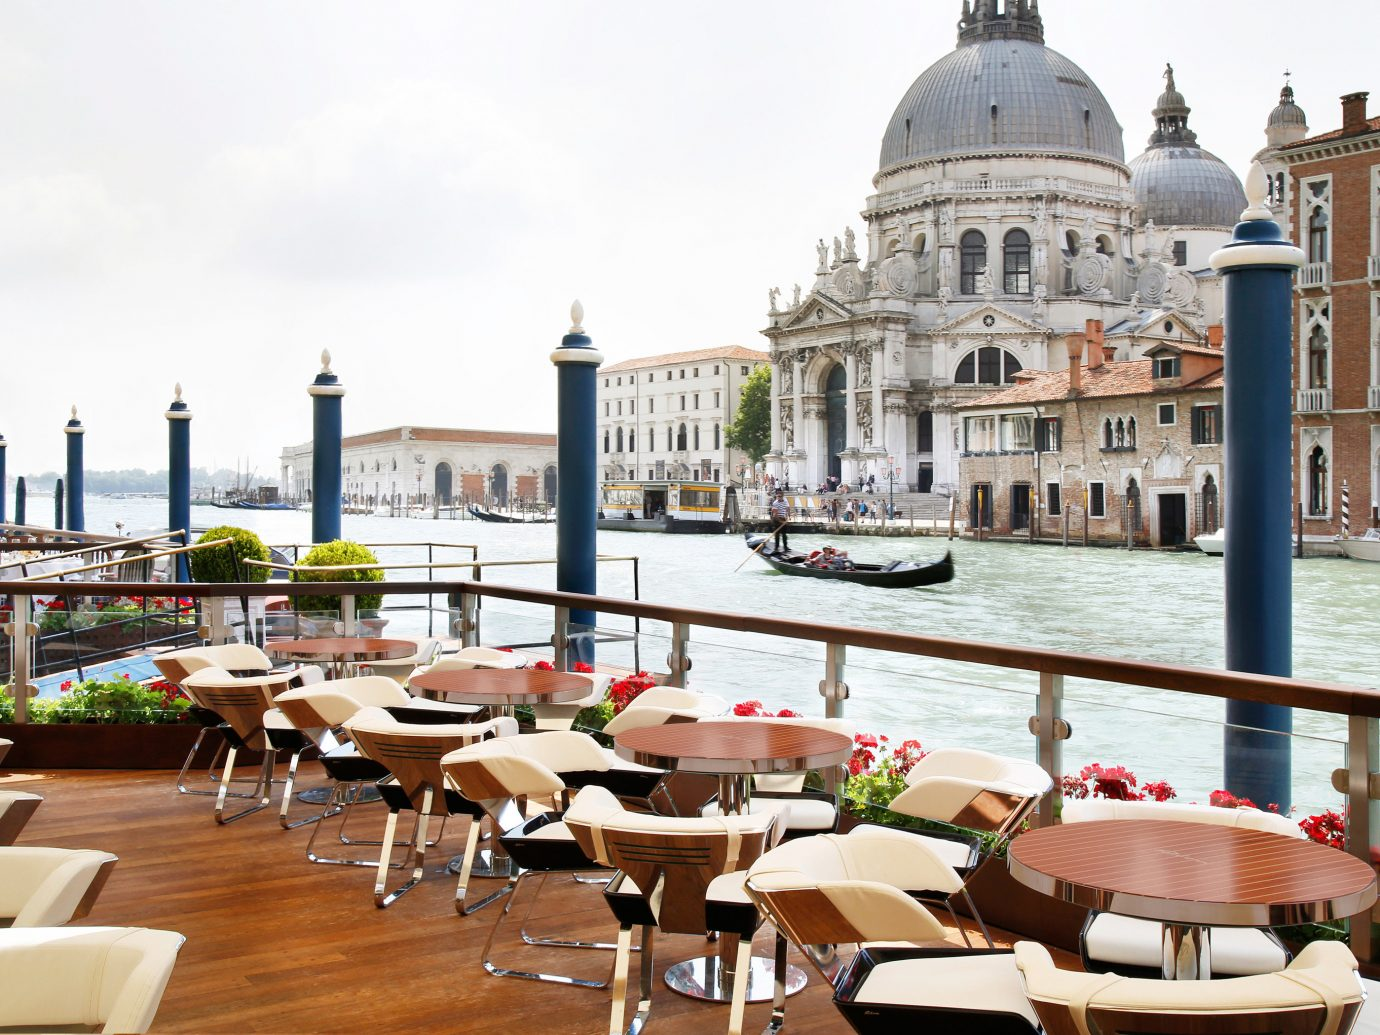 Budget Hotels Italy Luxury Travel Venice sky table outdoor plaza vacation tourism palace restaurant estate Resort